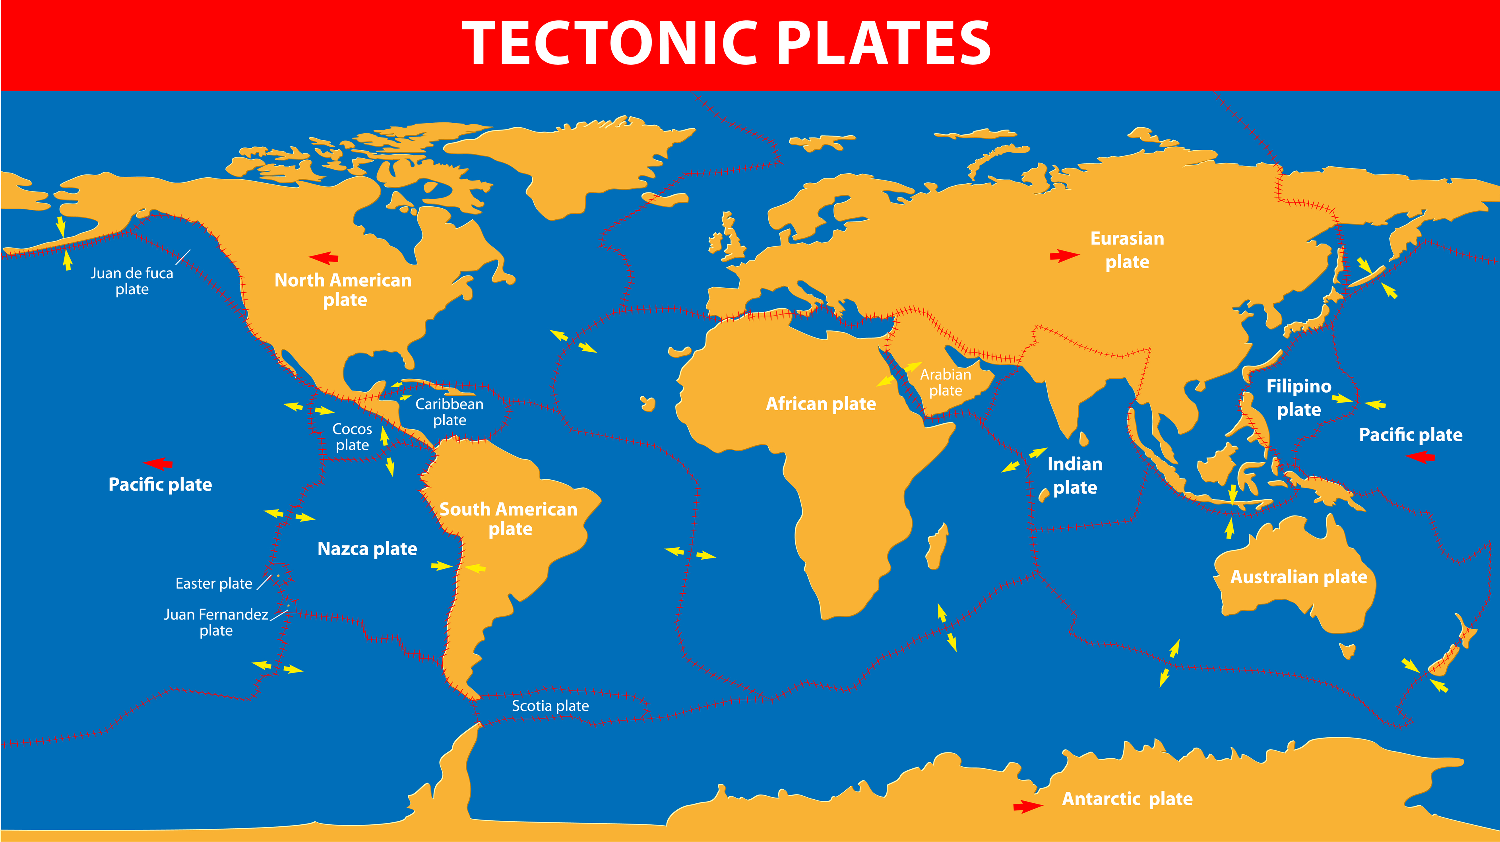 How Many Tectonic Plates Are There